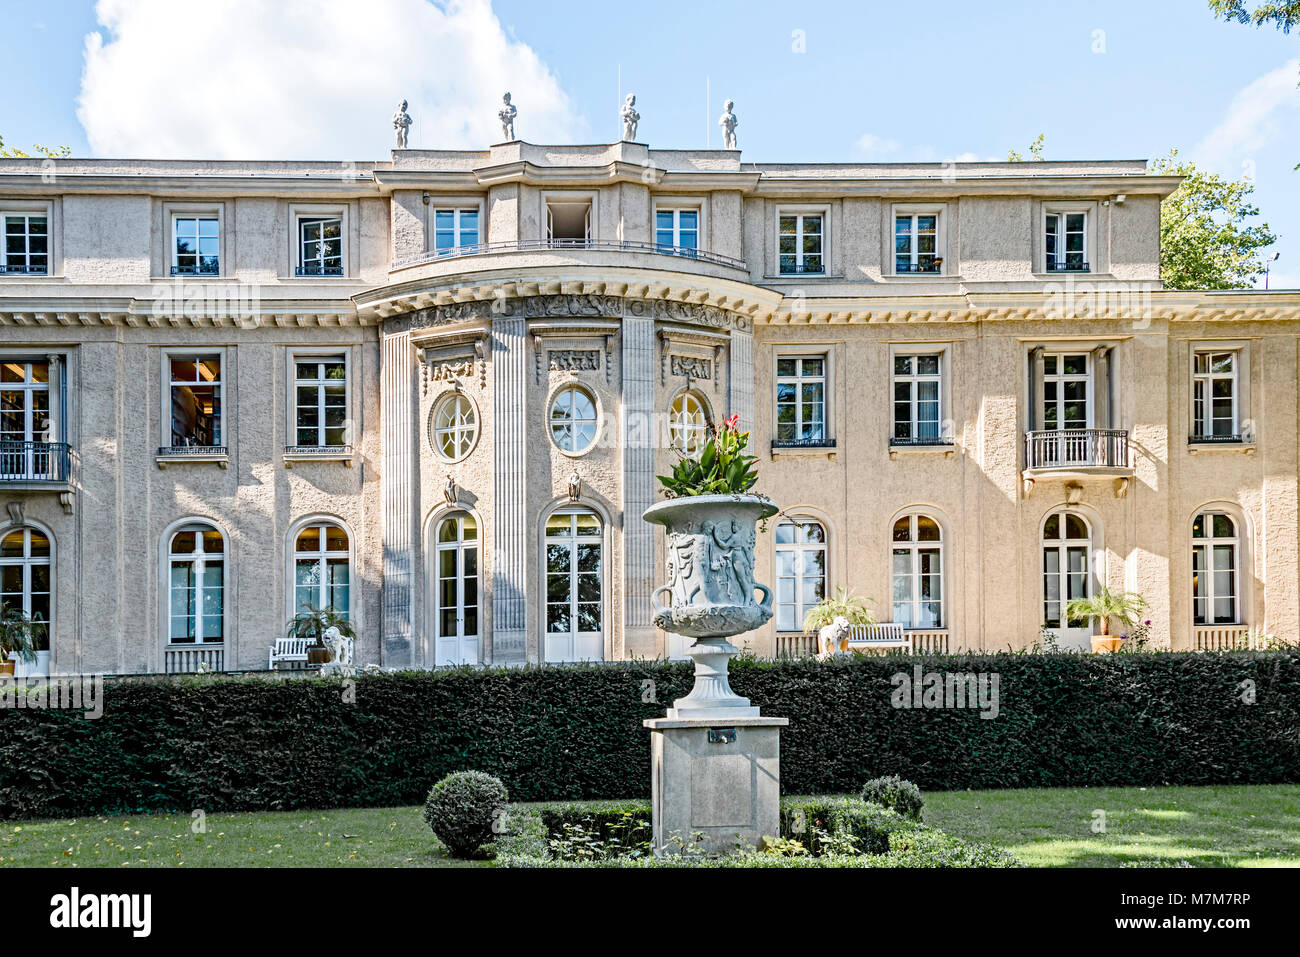 Villa Berlin berlin germany wannsee villa location of the wannsee conference